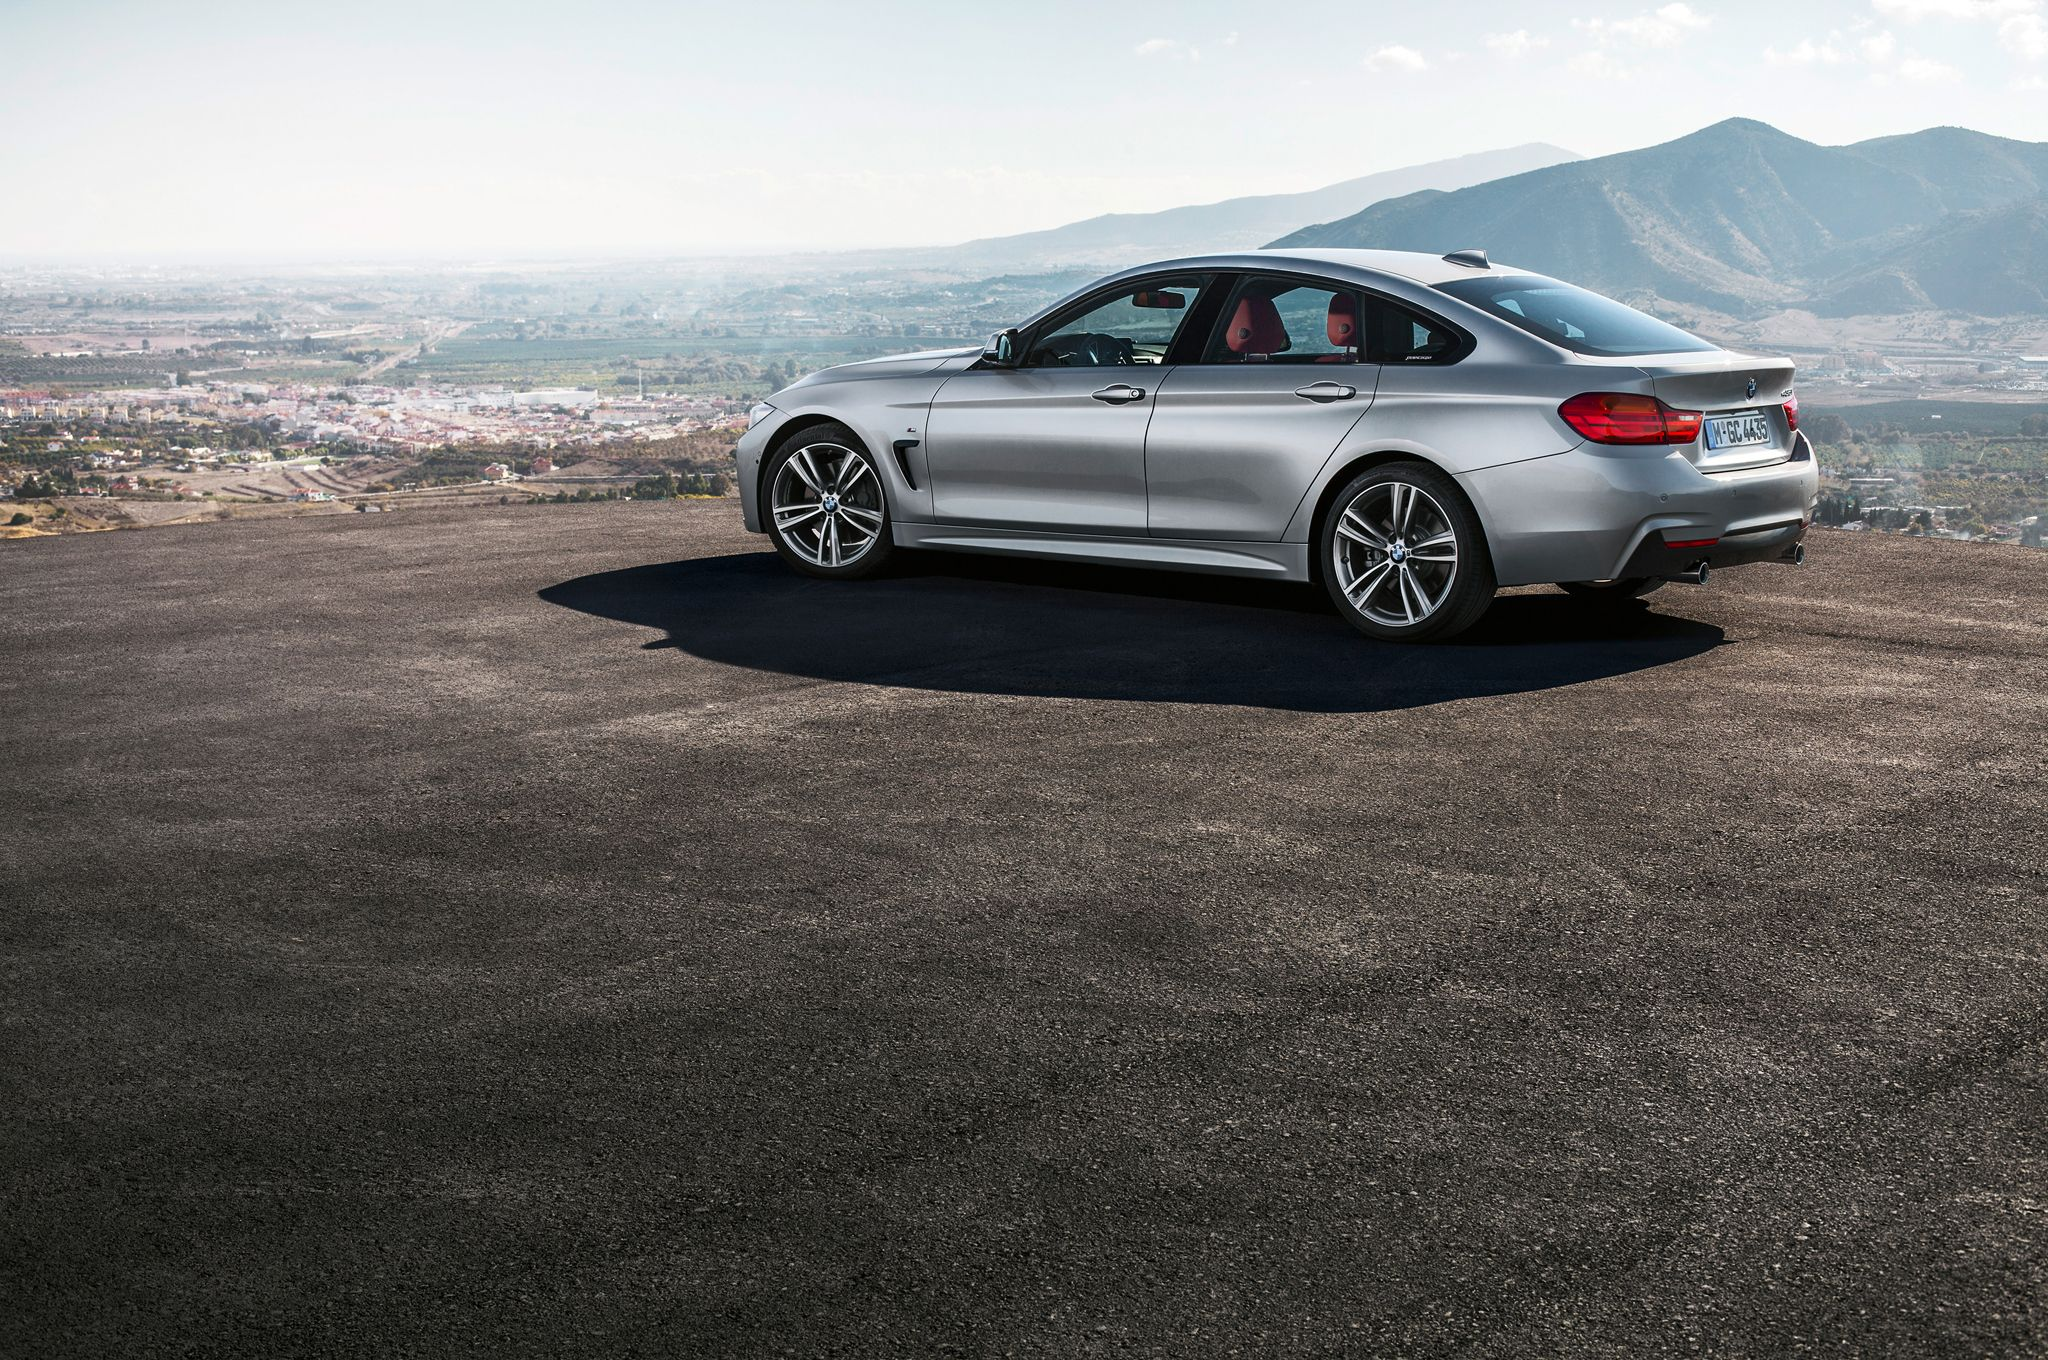 Bmw 435i gran coupe m sport bmw pinterest bmw bmw series com the 2015 bmw 4 series gran coupe arrives in the us in early summer of 2014 with two engine choices the gran coupe will feature bmws award winning sciox Choice Image